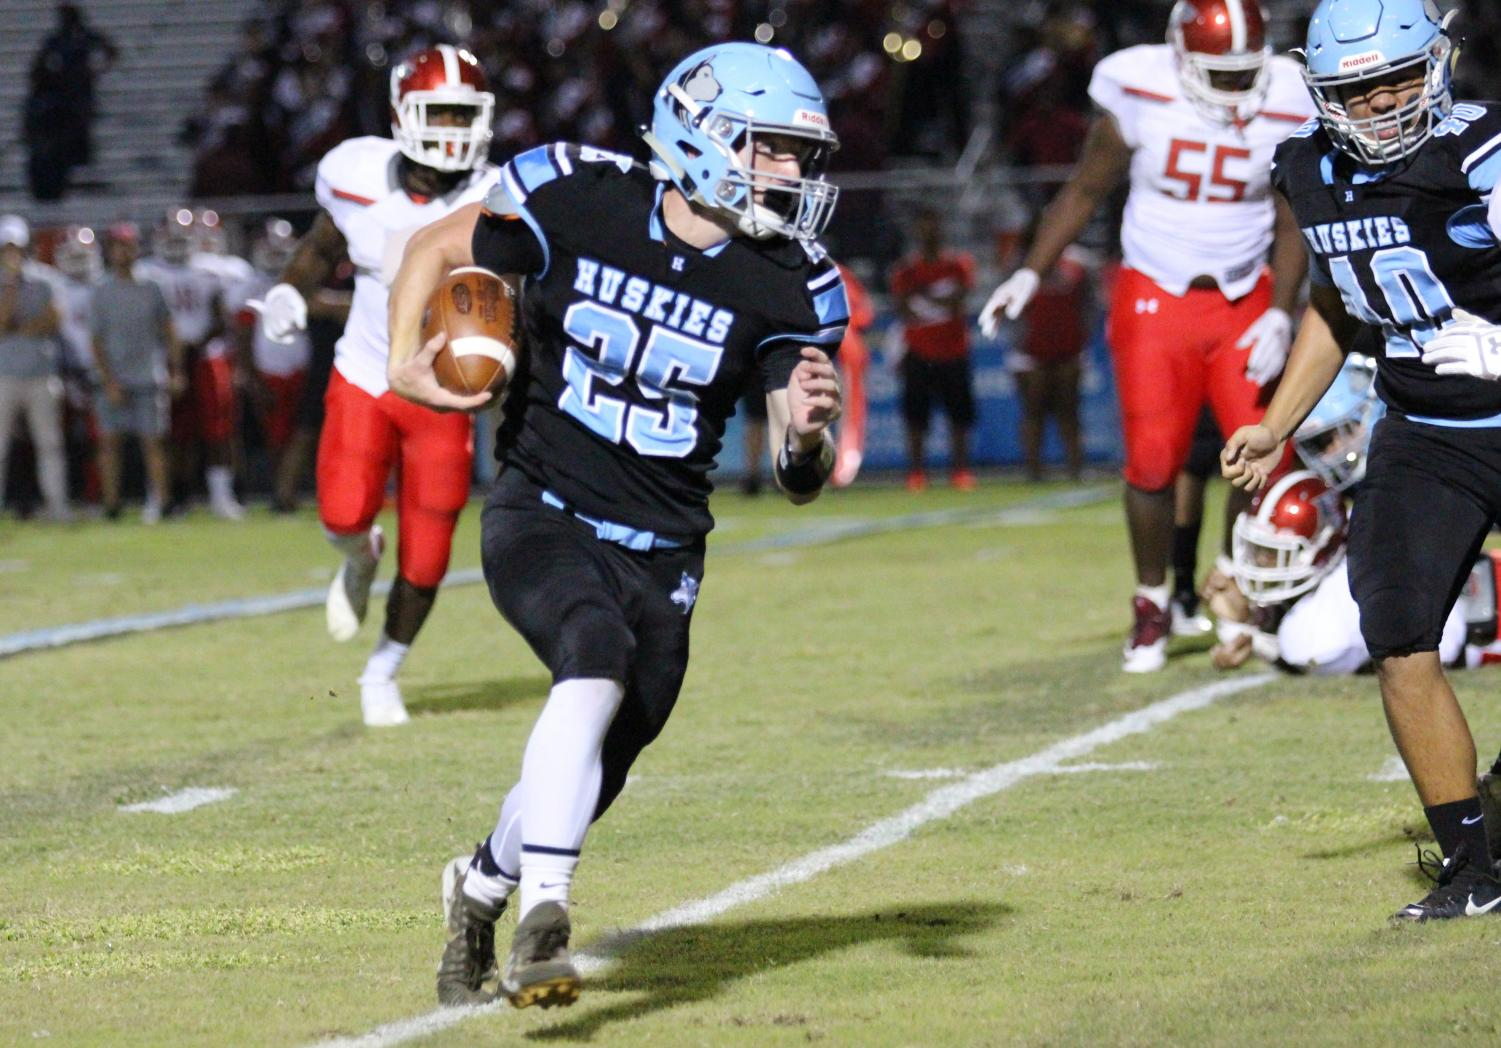 Wingback D.J. McCunney rushed for 38 yards on 9 carries in the varsity team's 31-15 Homecoming victory over Edgewater.